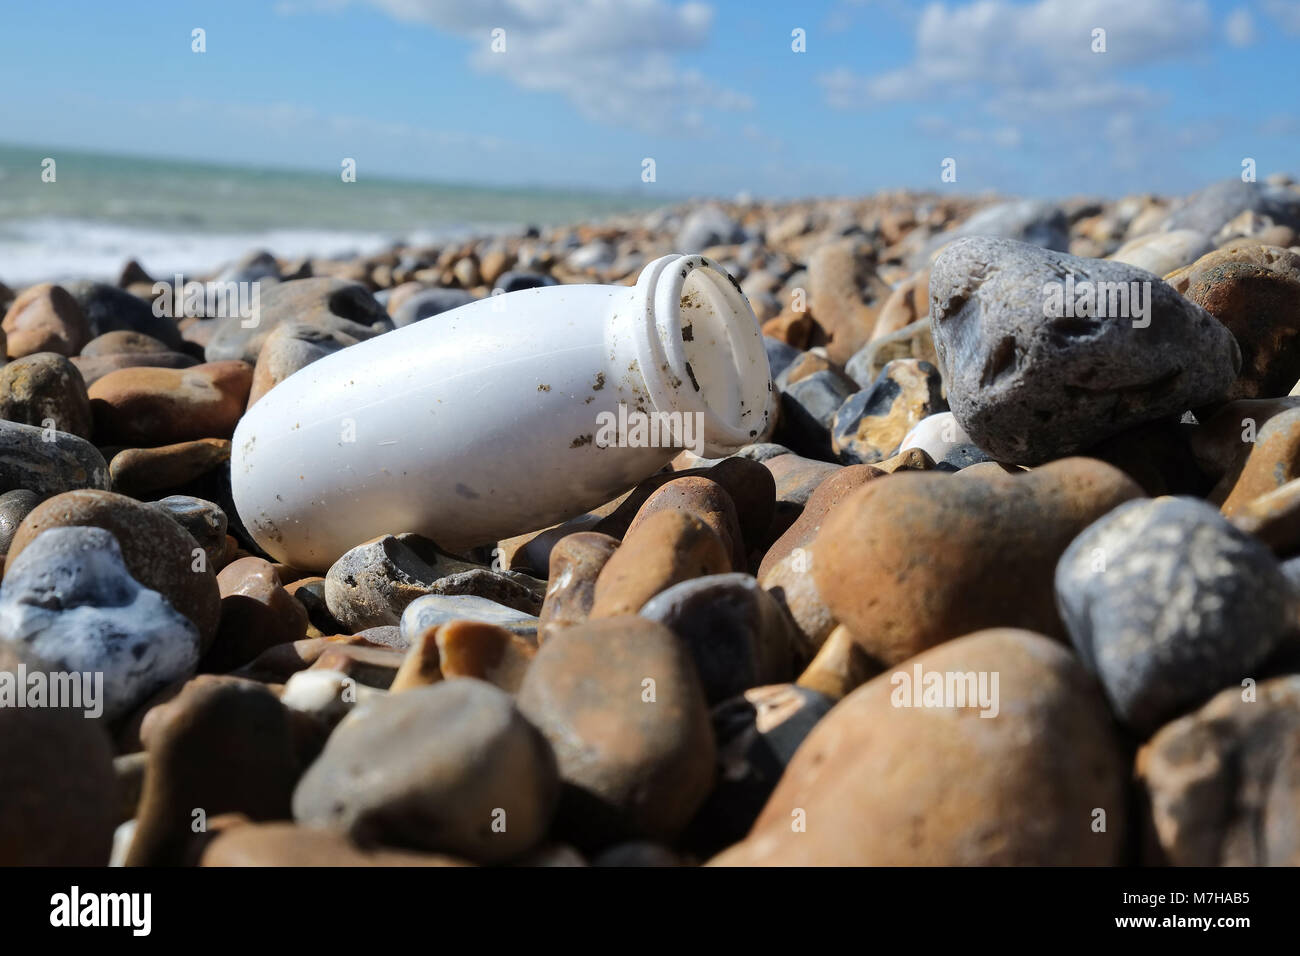 Plastic bottle on the beach at Shoreham by Sea in Sussex Beach rubbish washed ashore - Stock Image